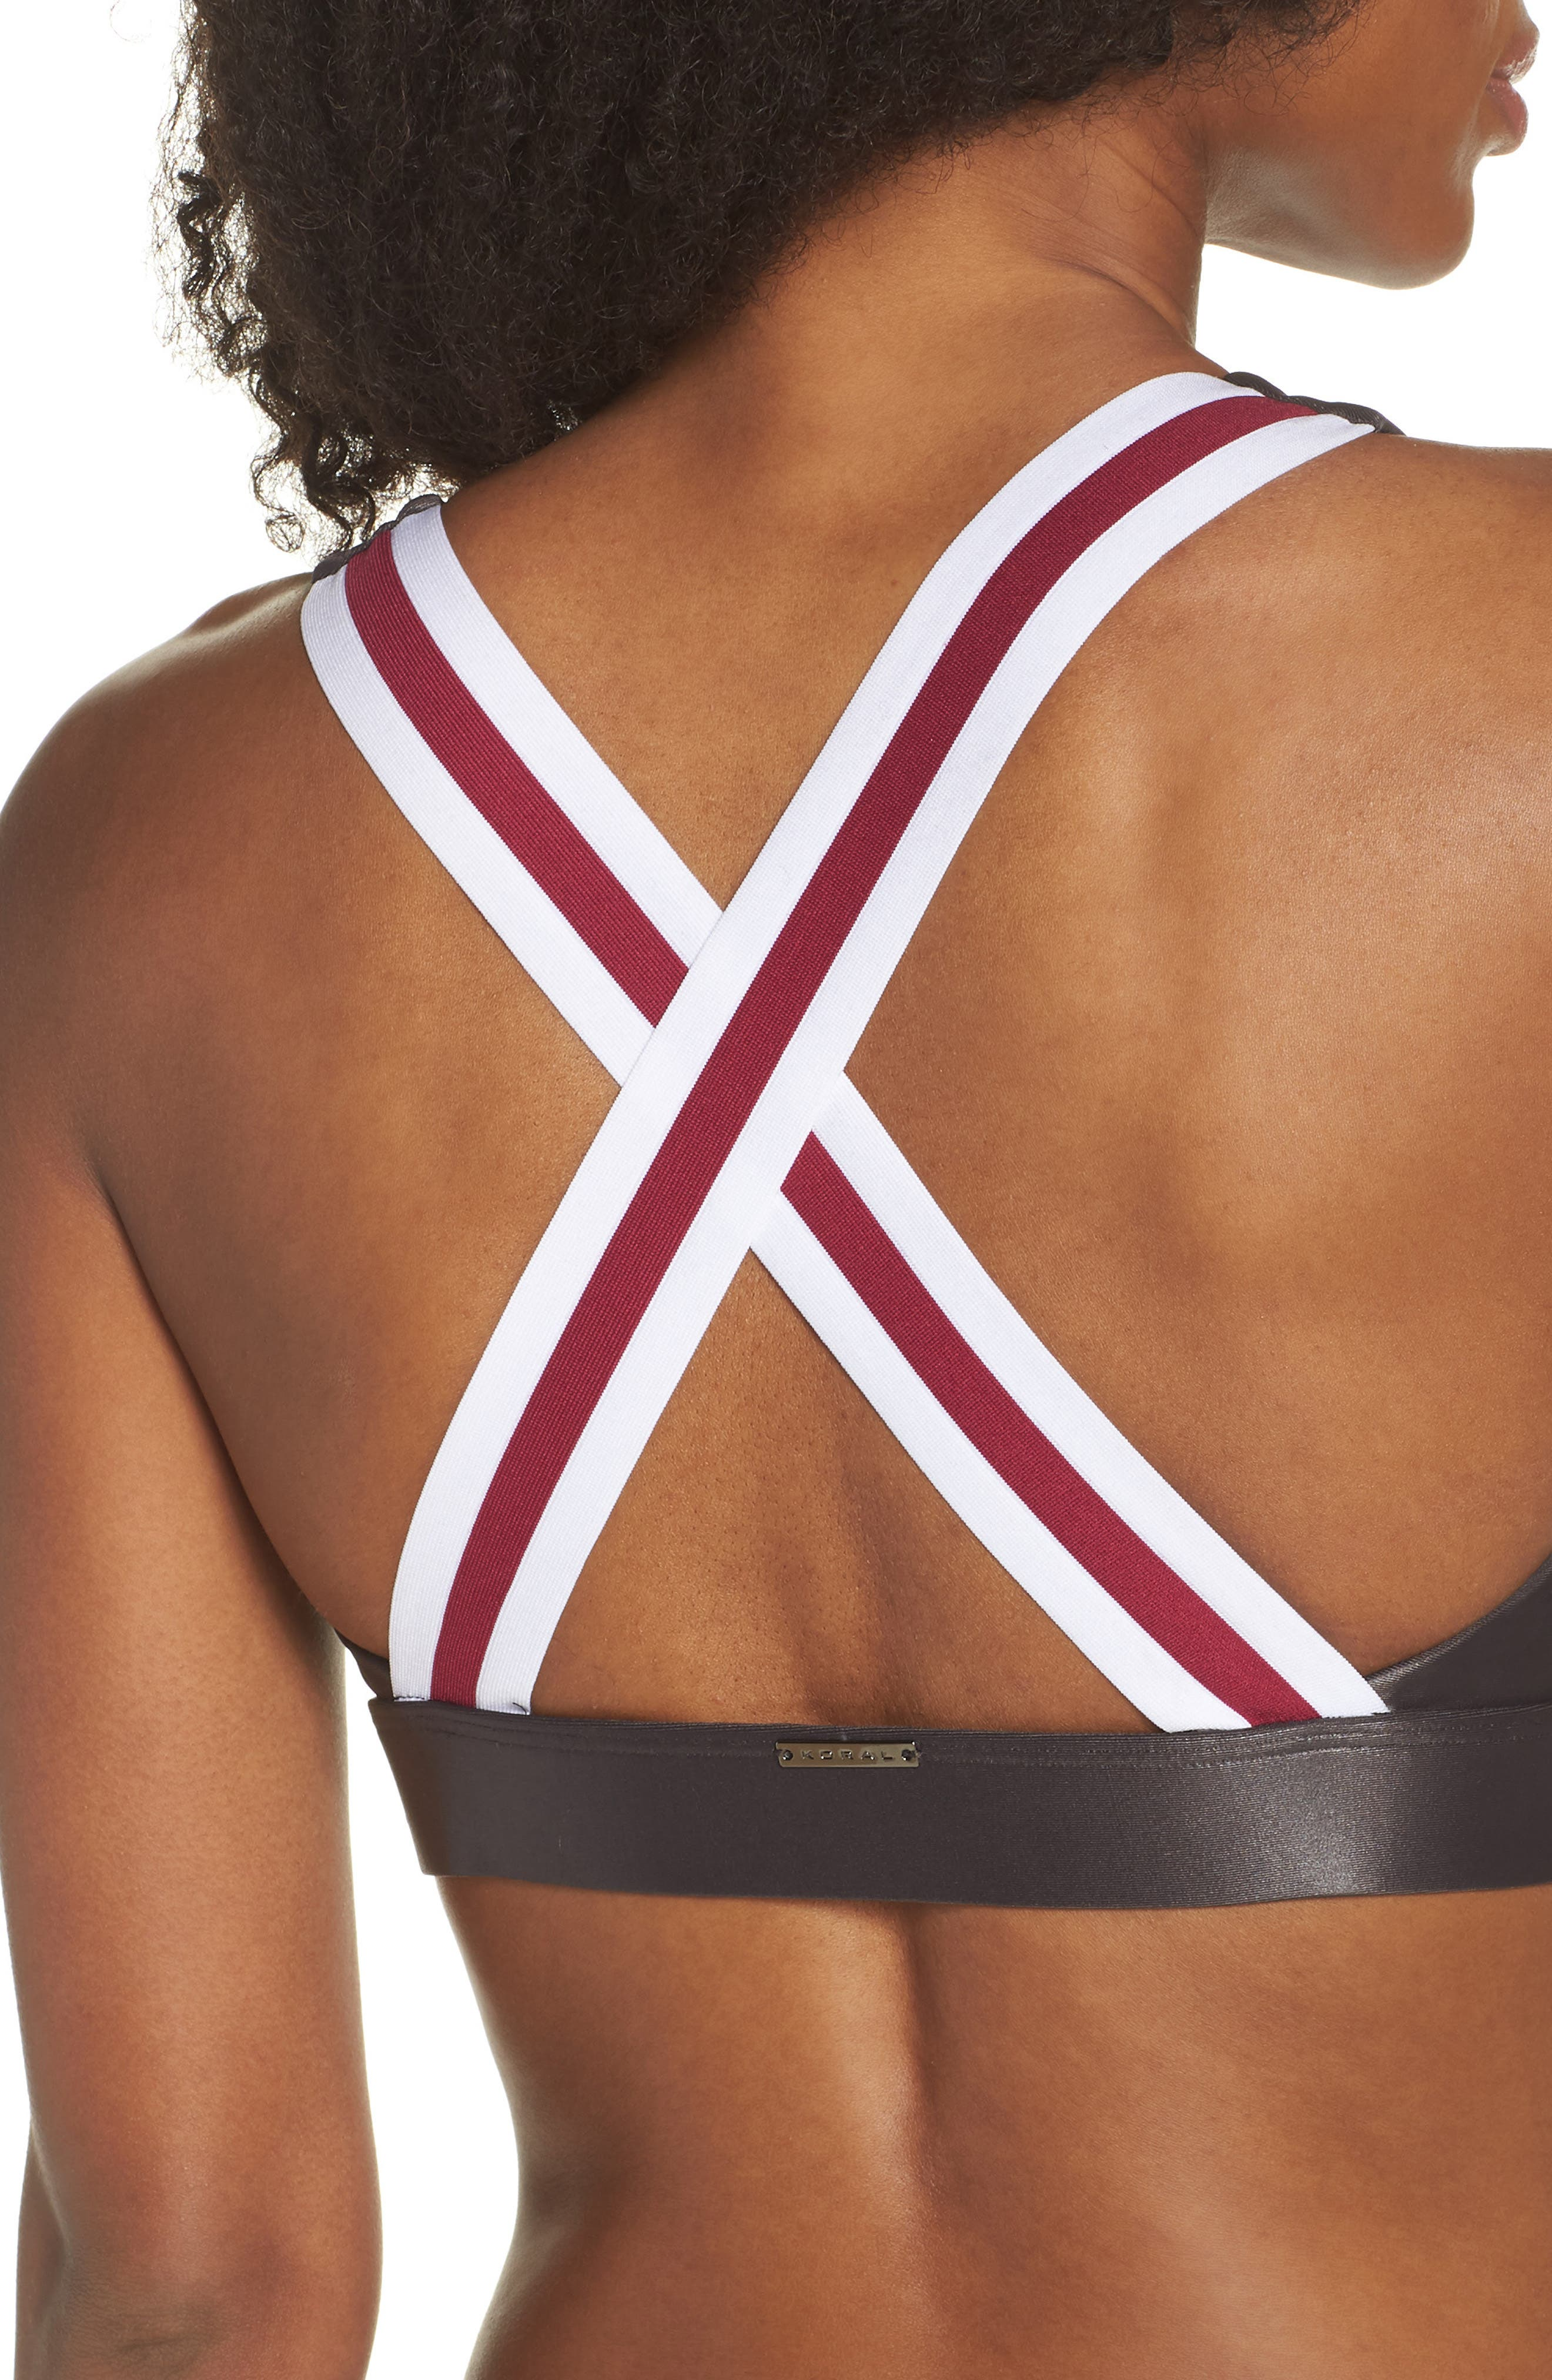 Fame Sports Bra,                             Alternate thumbnail 4, color,                             LEAD